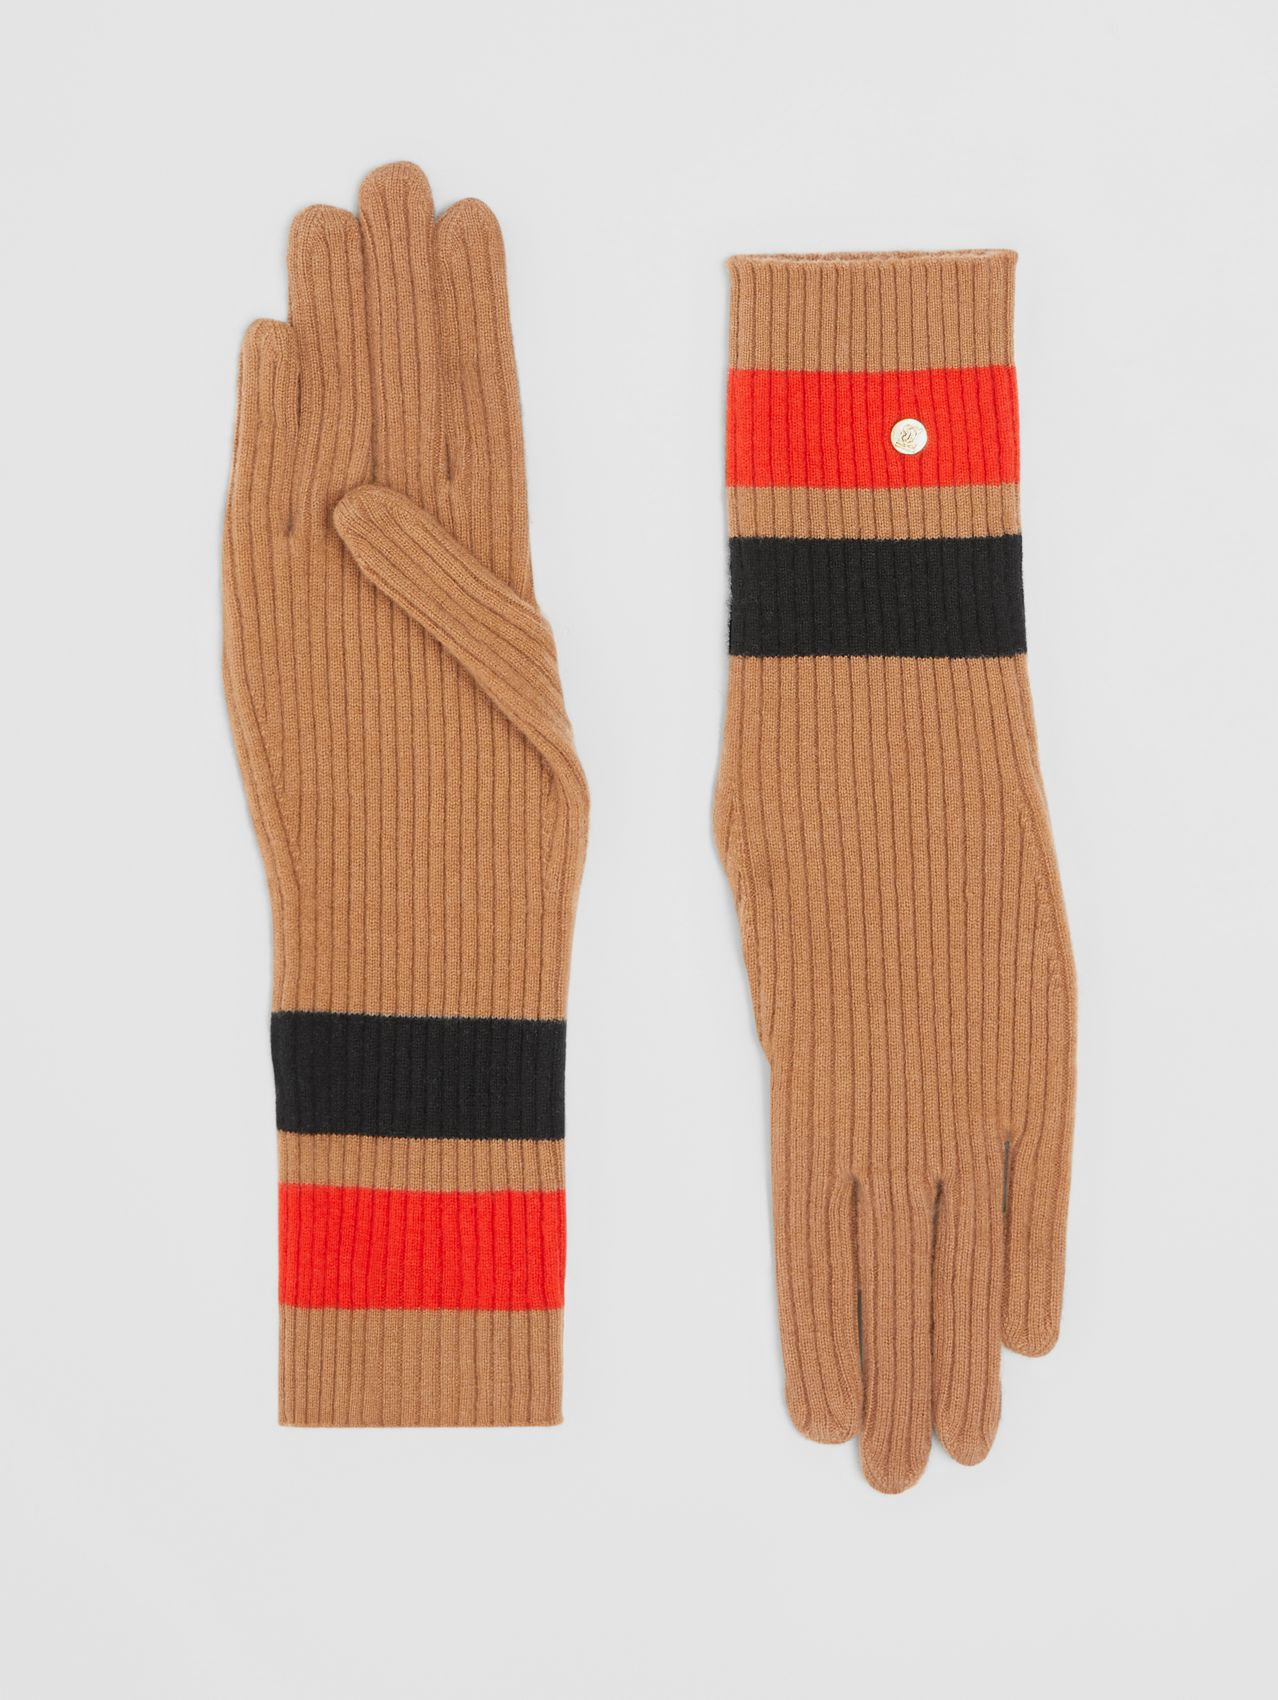 Monogram Motif Merino Wool Cashmere Gloves in Warm Camel